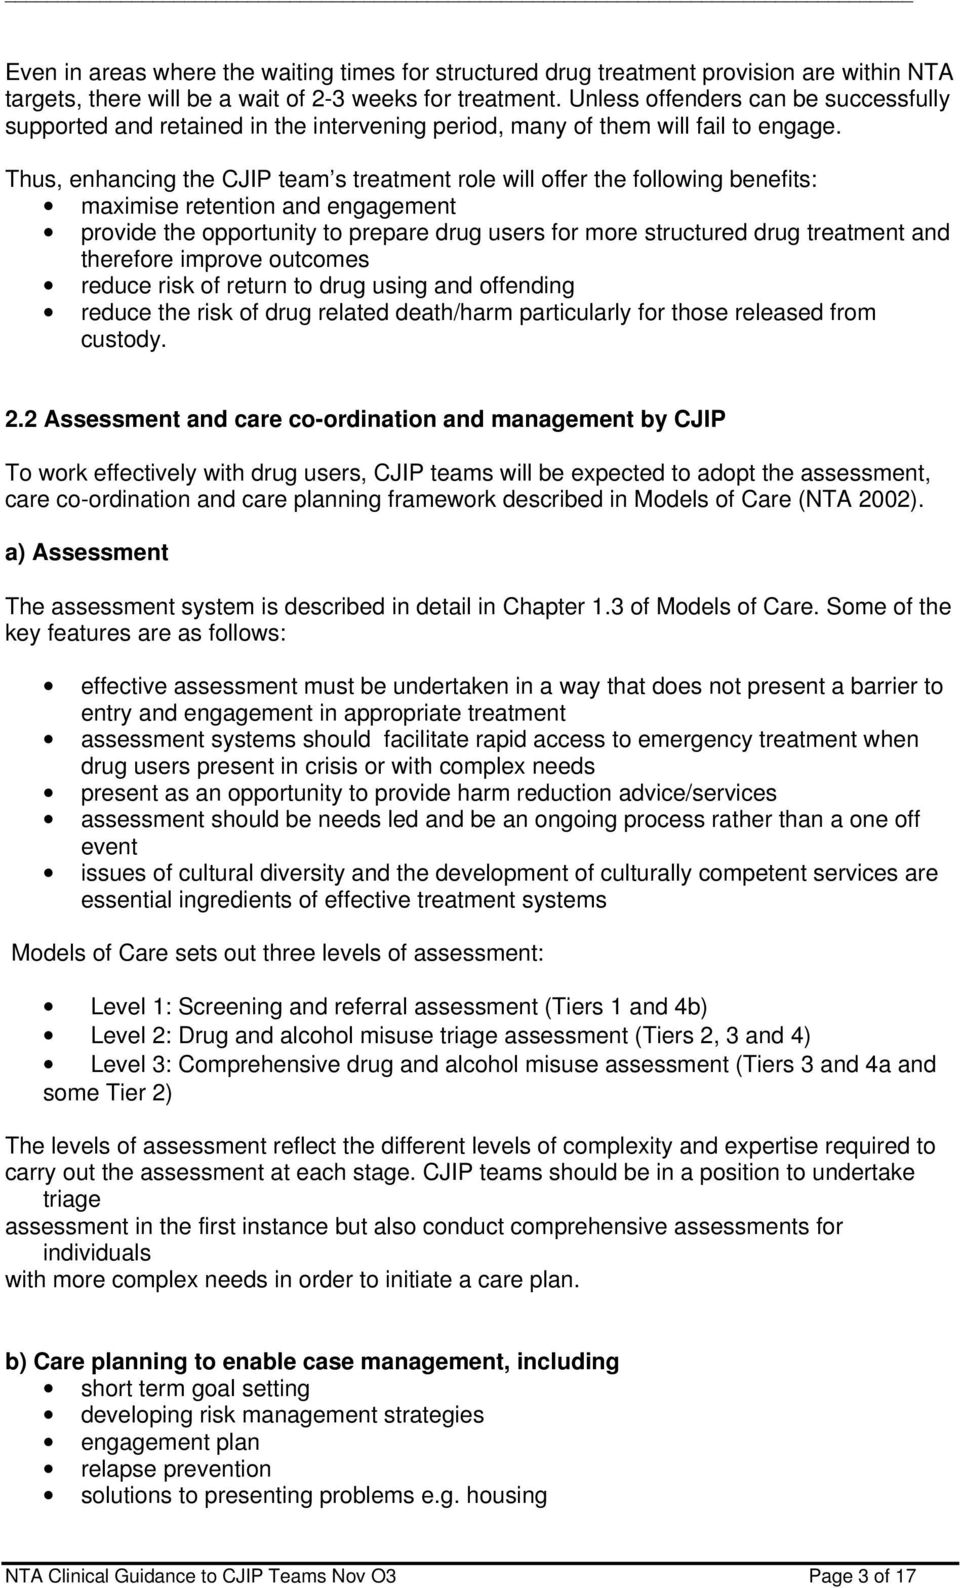 Thus, enhancing the CJIP team s treatment role will offer the following benefits: maximise retention and engagement provide the opportunity to prepare drug users for more structured drug treatment